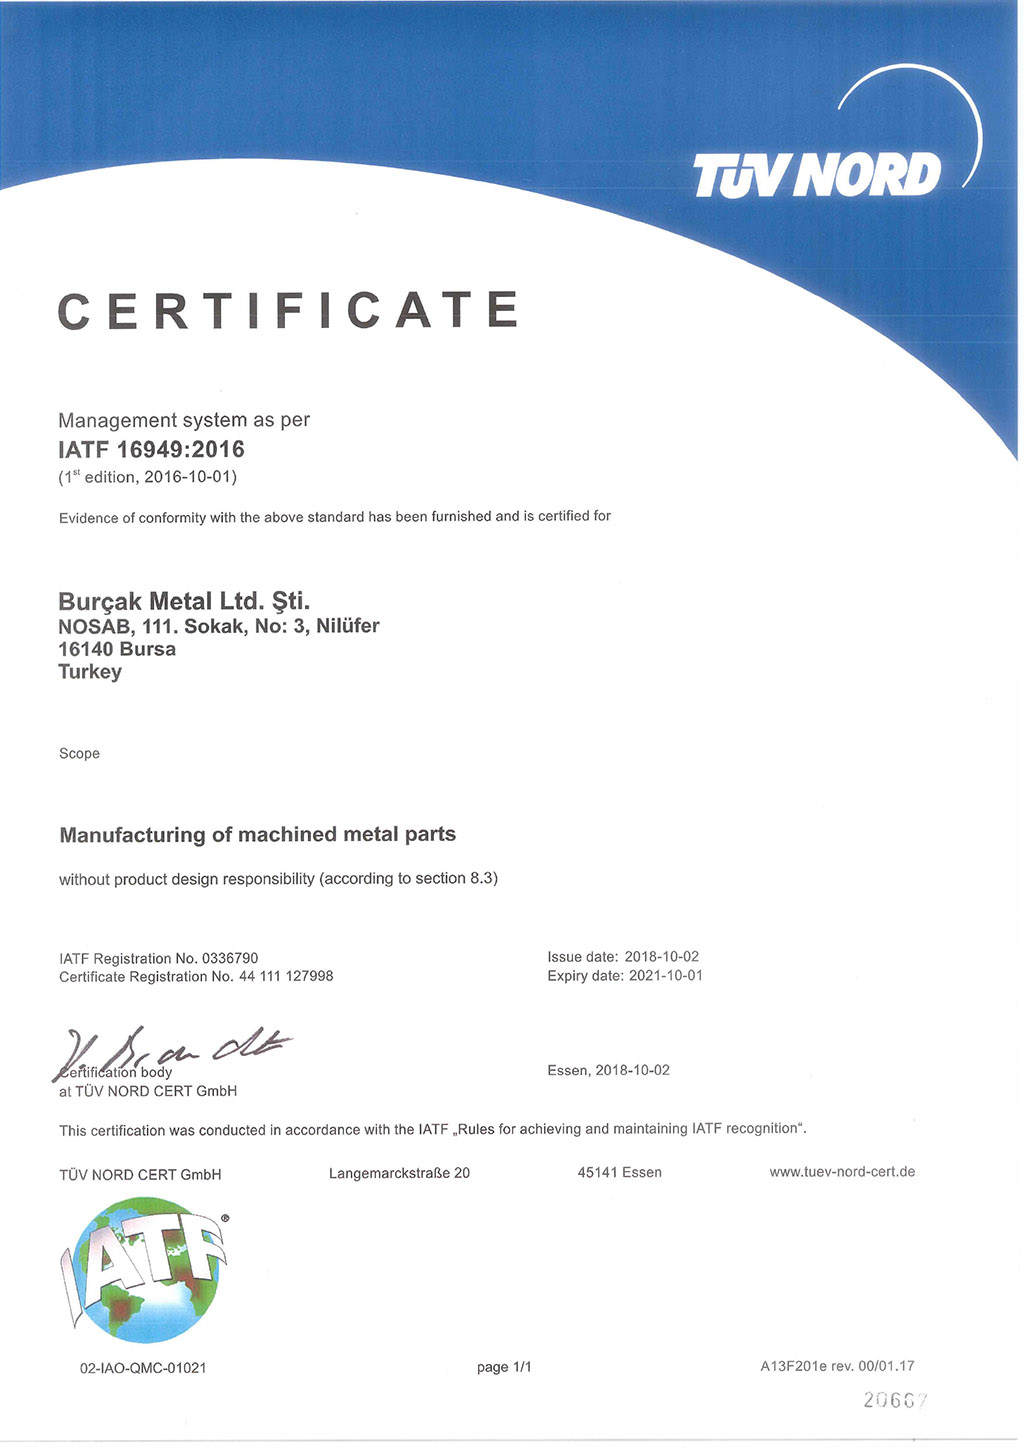 IATF 16949:2016 QUALITY MANAGEMENT SYSTEM CERTIFICATE